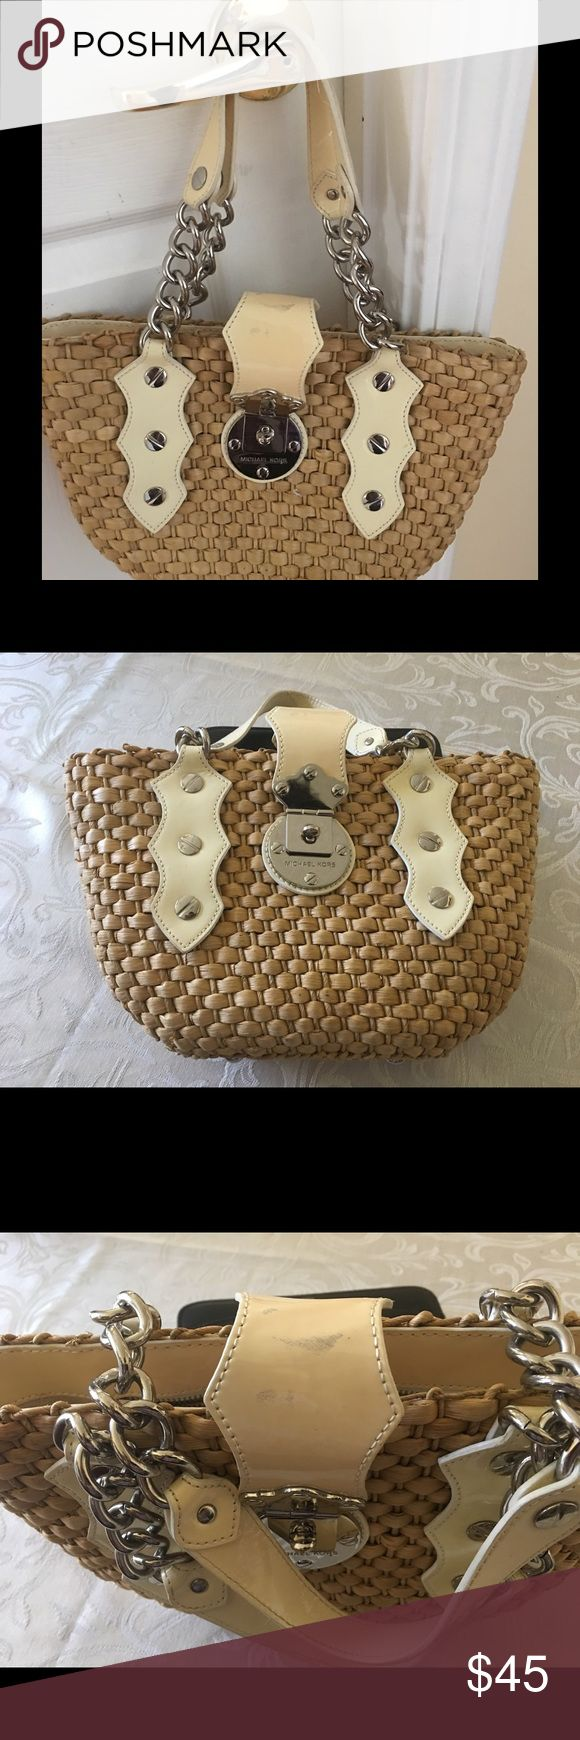 MICHAEL Kors Natural Straw Bucket Handbag Gorgeous Structured Summer Hand Bag! A Neutral Straw Base With Cream Handles And Silver Accents. It has a few mark on the flap. Otherwise a nice purse Michael Kors Bags Totes